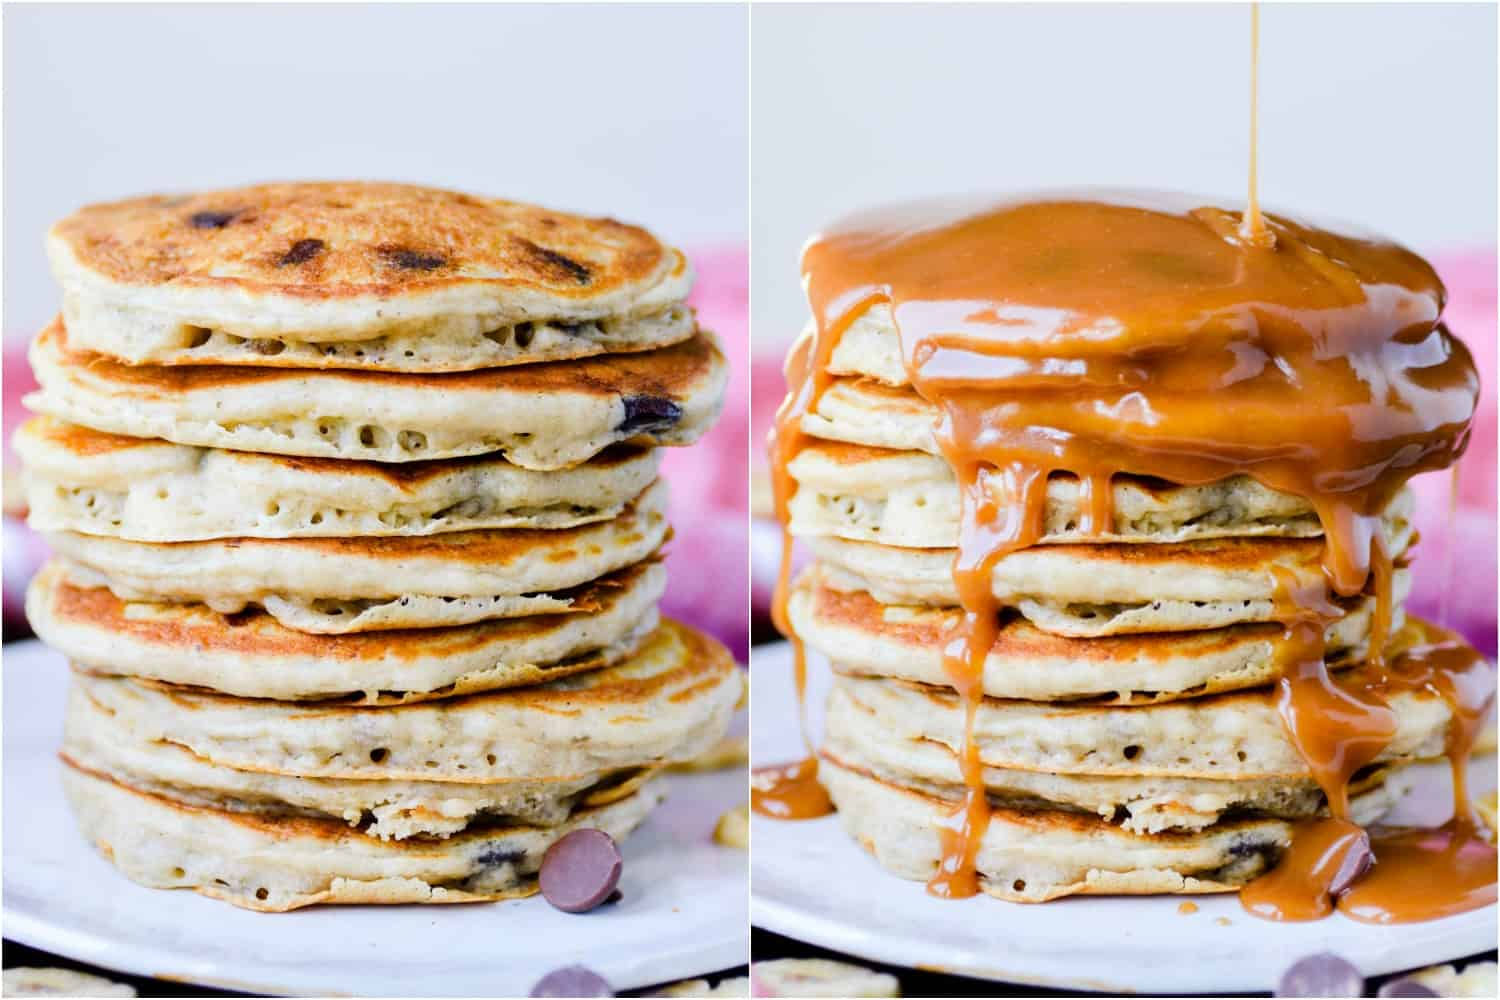 Banana chocolate chip pancakes served with peanut butter maple syrup. Breakfast of champions!